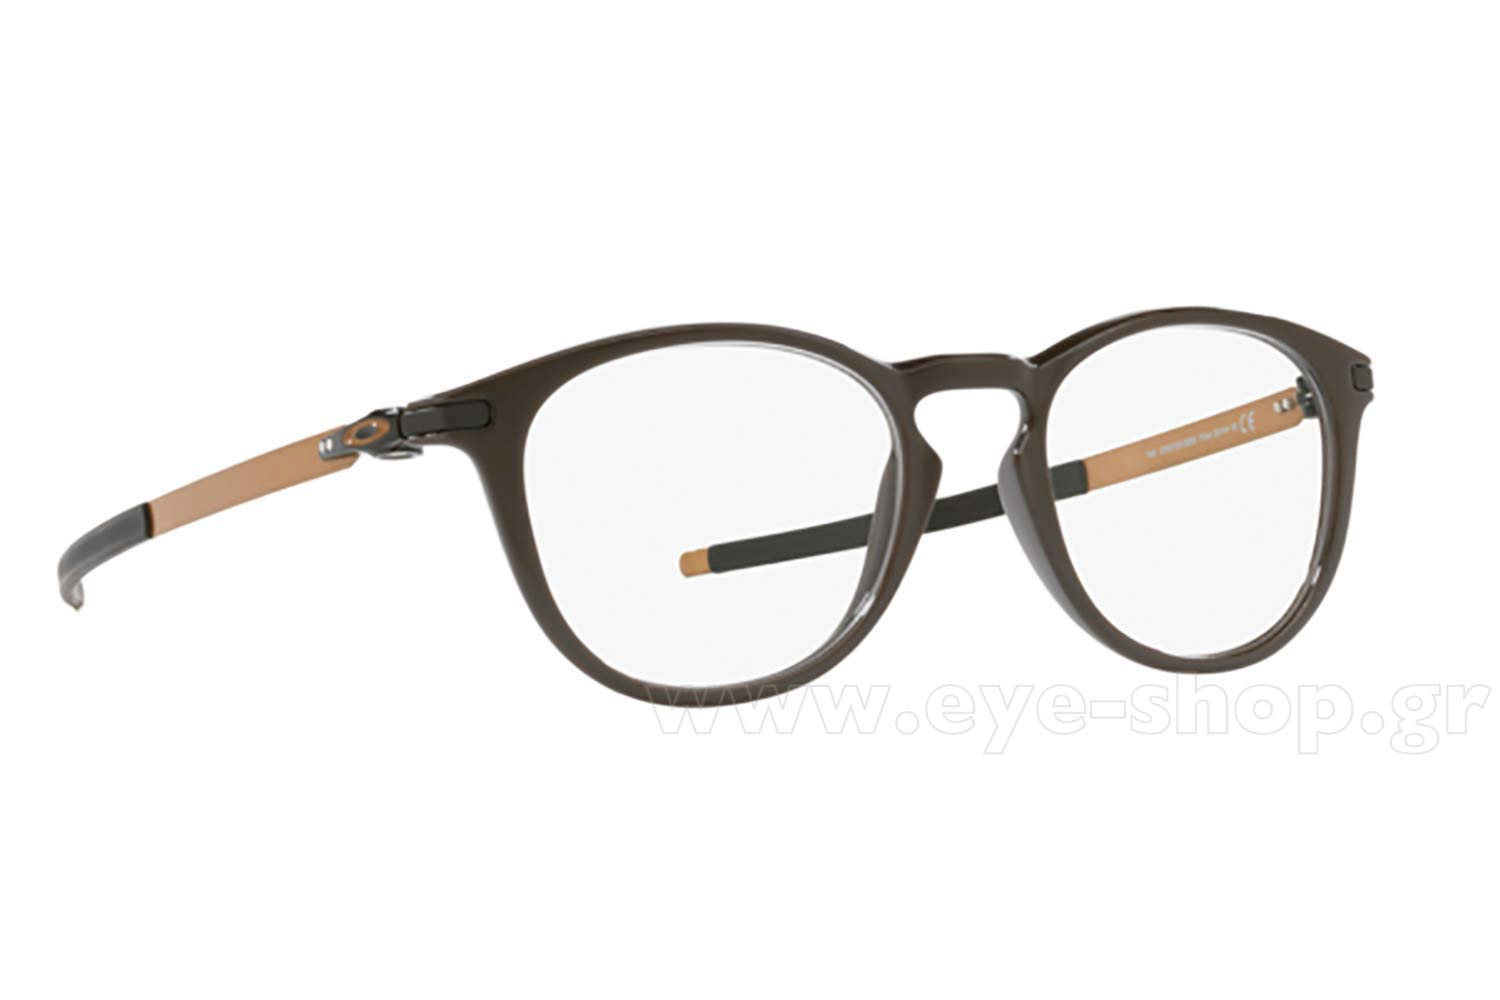 Γυαλιά Oakley PITCHMAN R 8105 09 Flint Copper